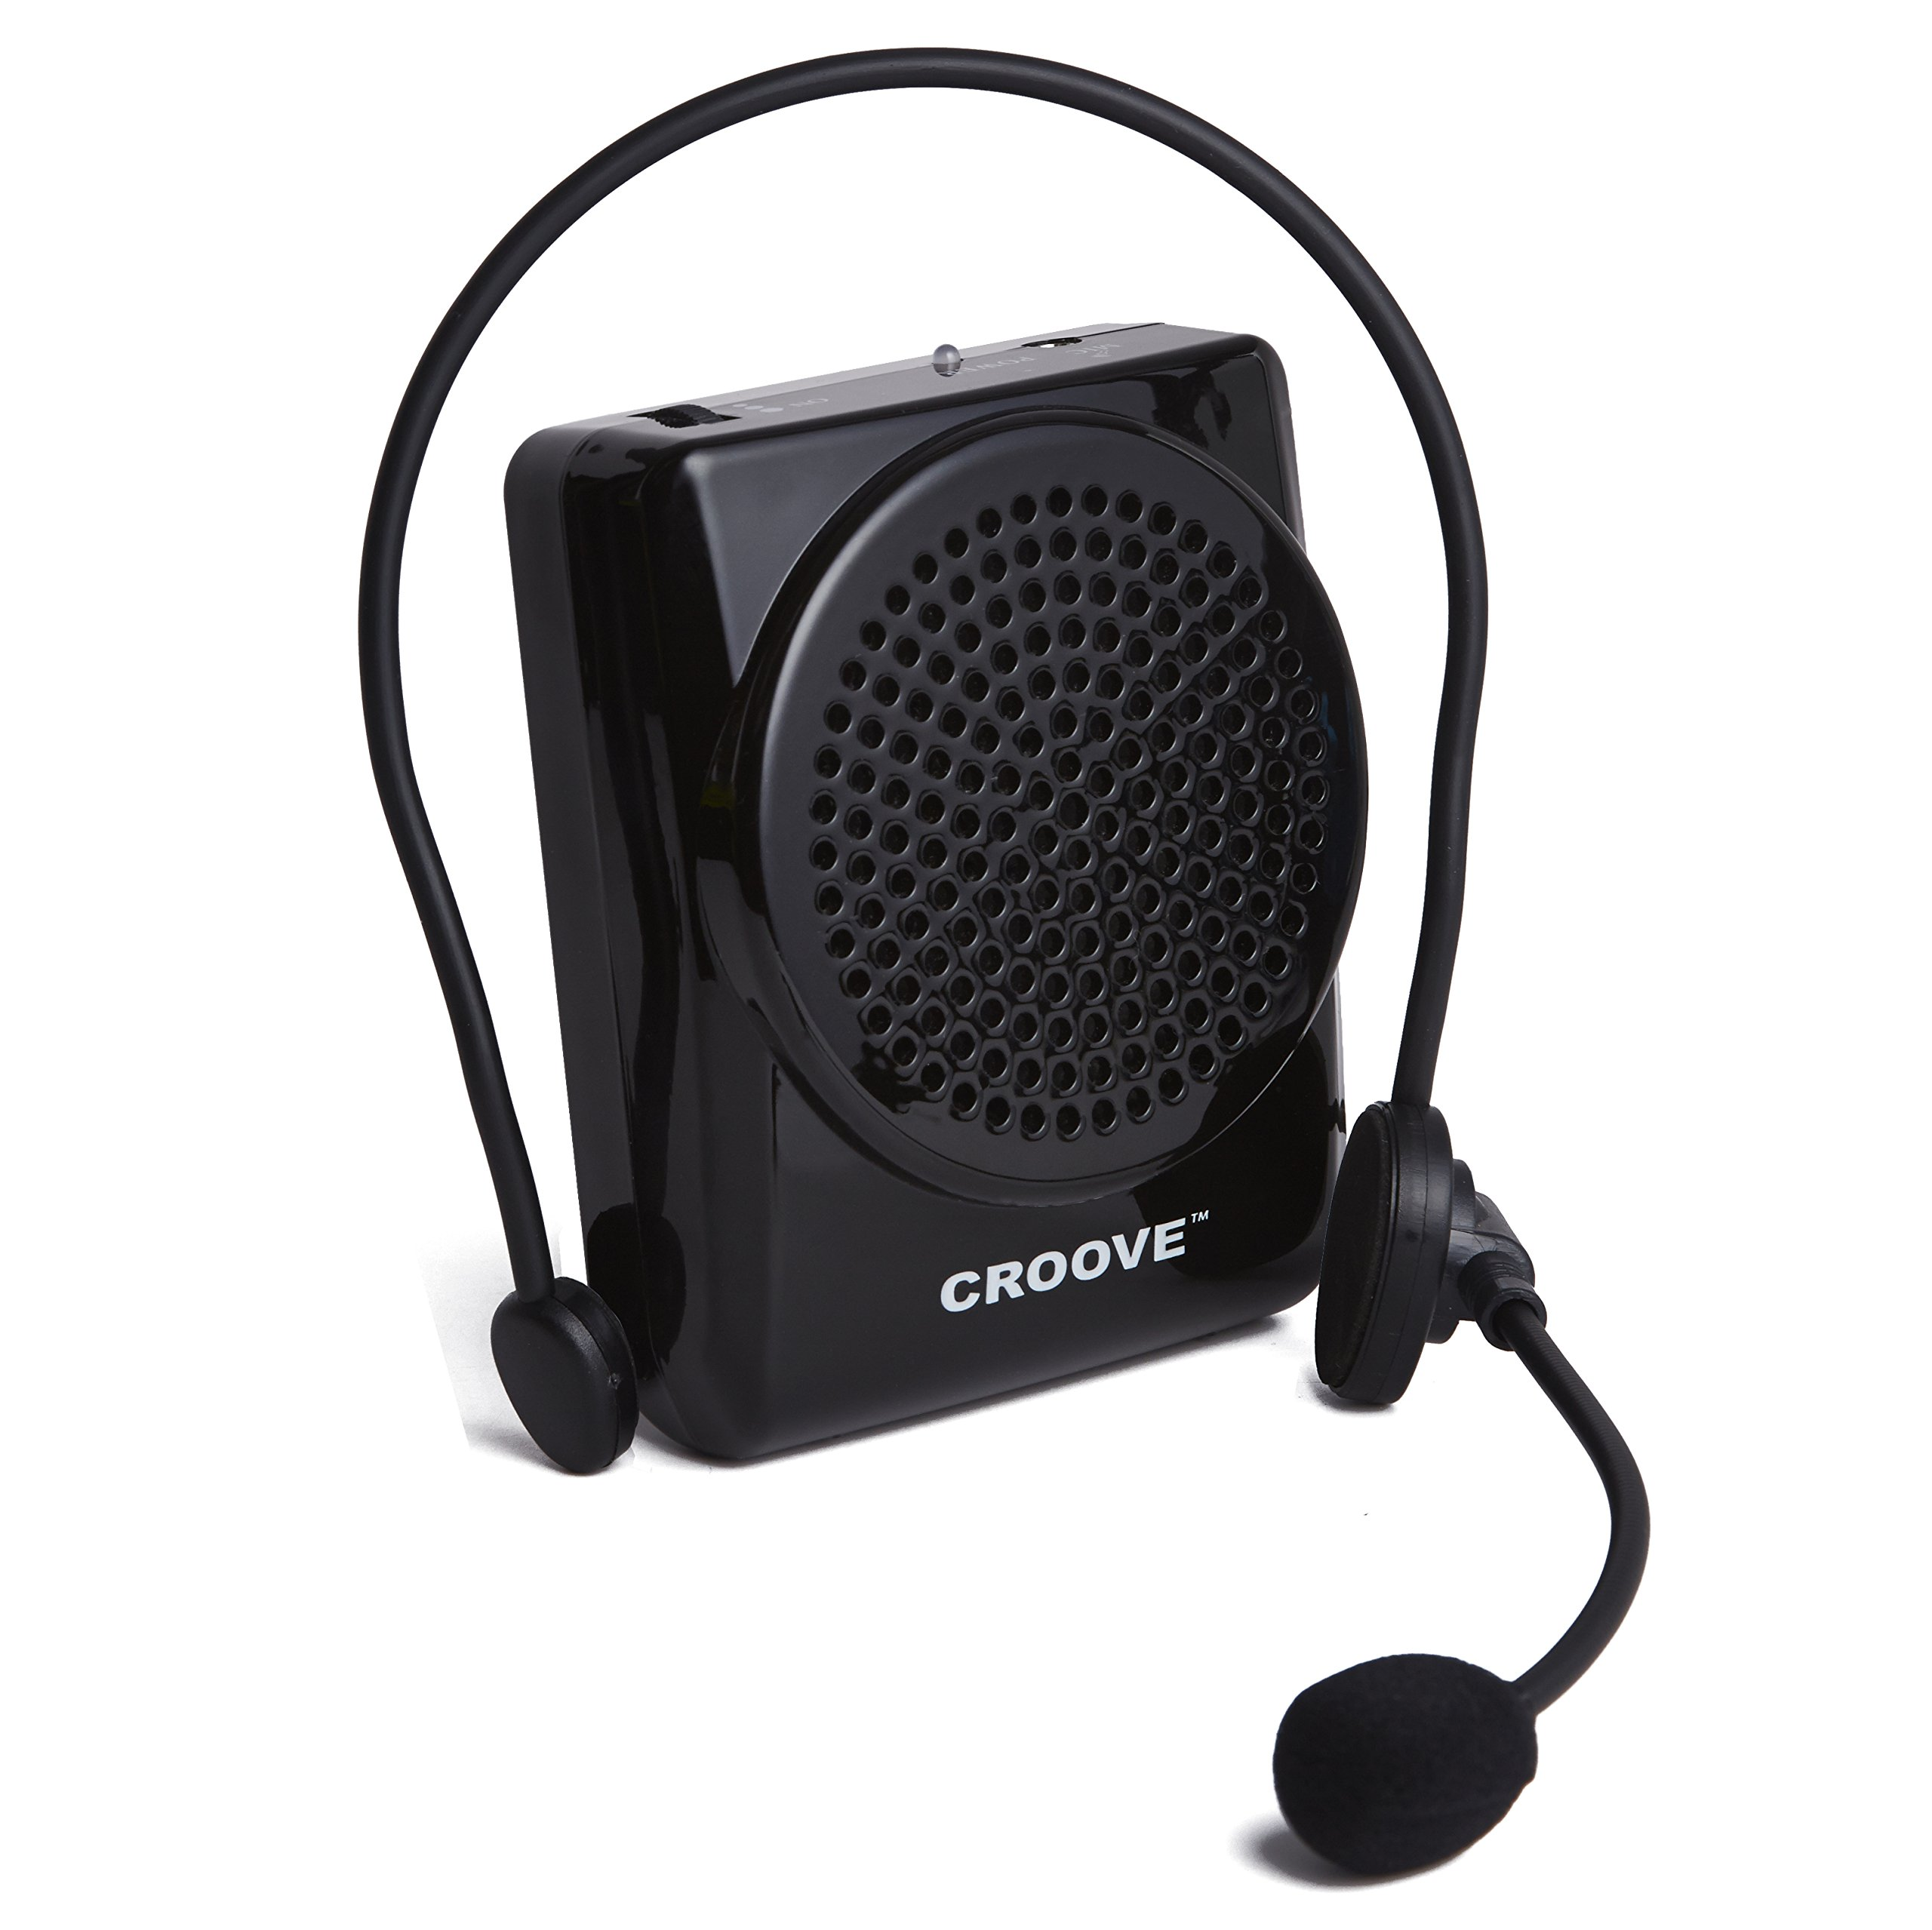 Croove Rechargeable Voice Amplifier, with Waist/Neck Band & Belt Clip, 20 Watts Headset by Croove